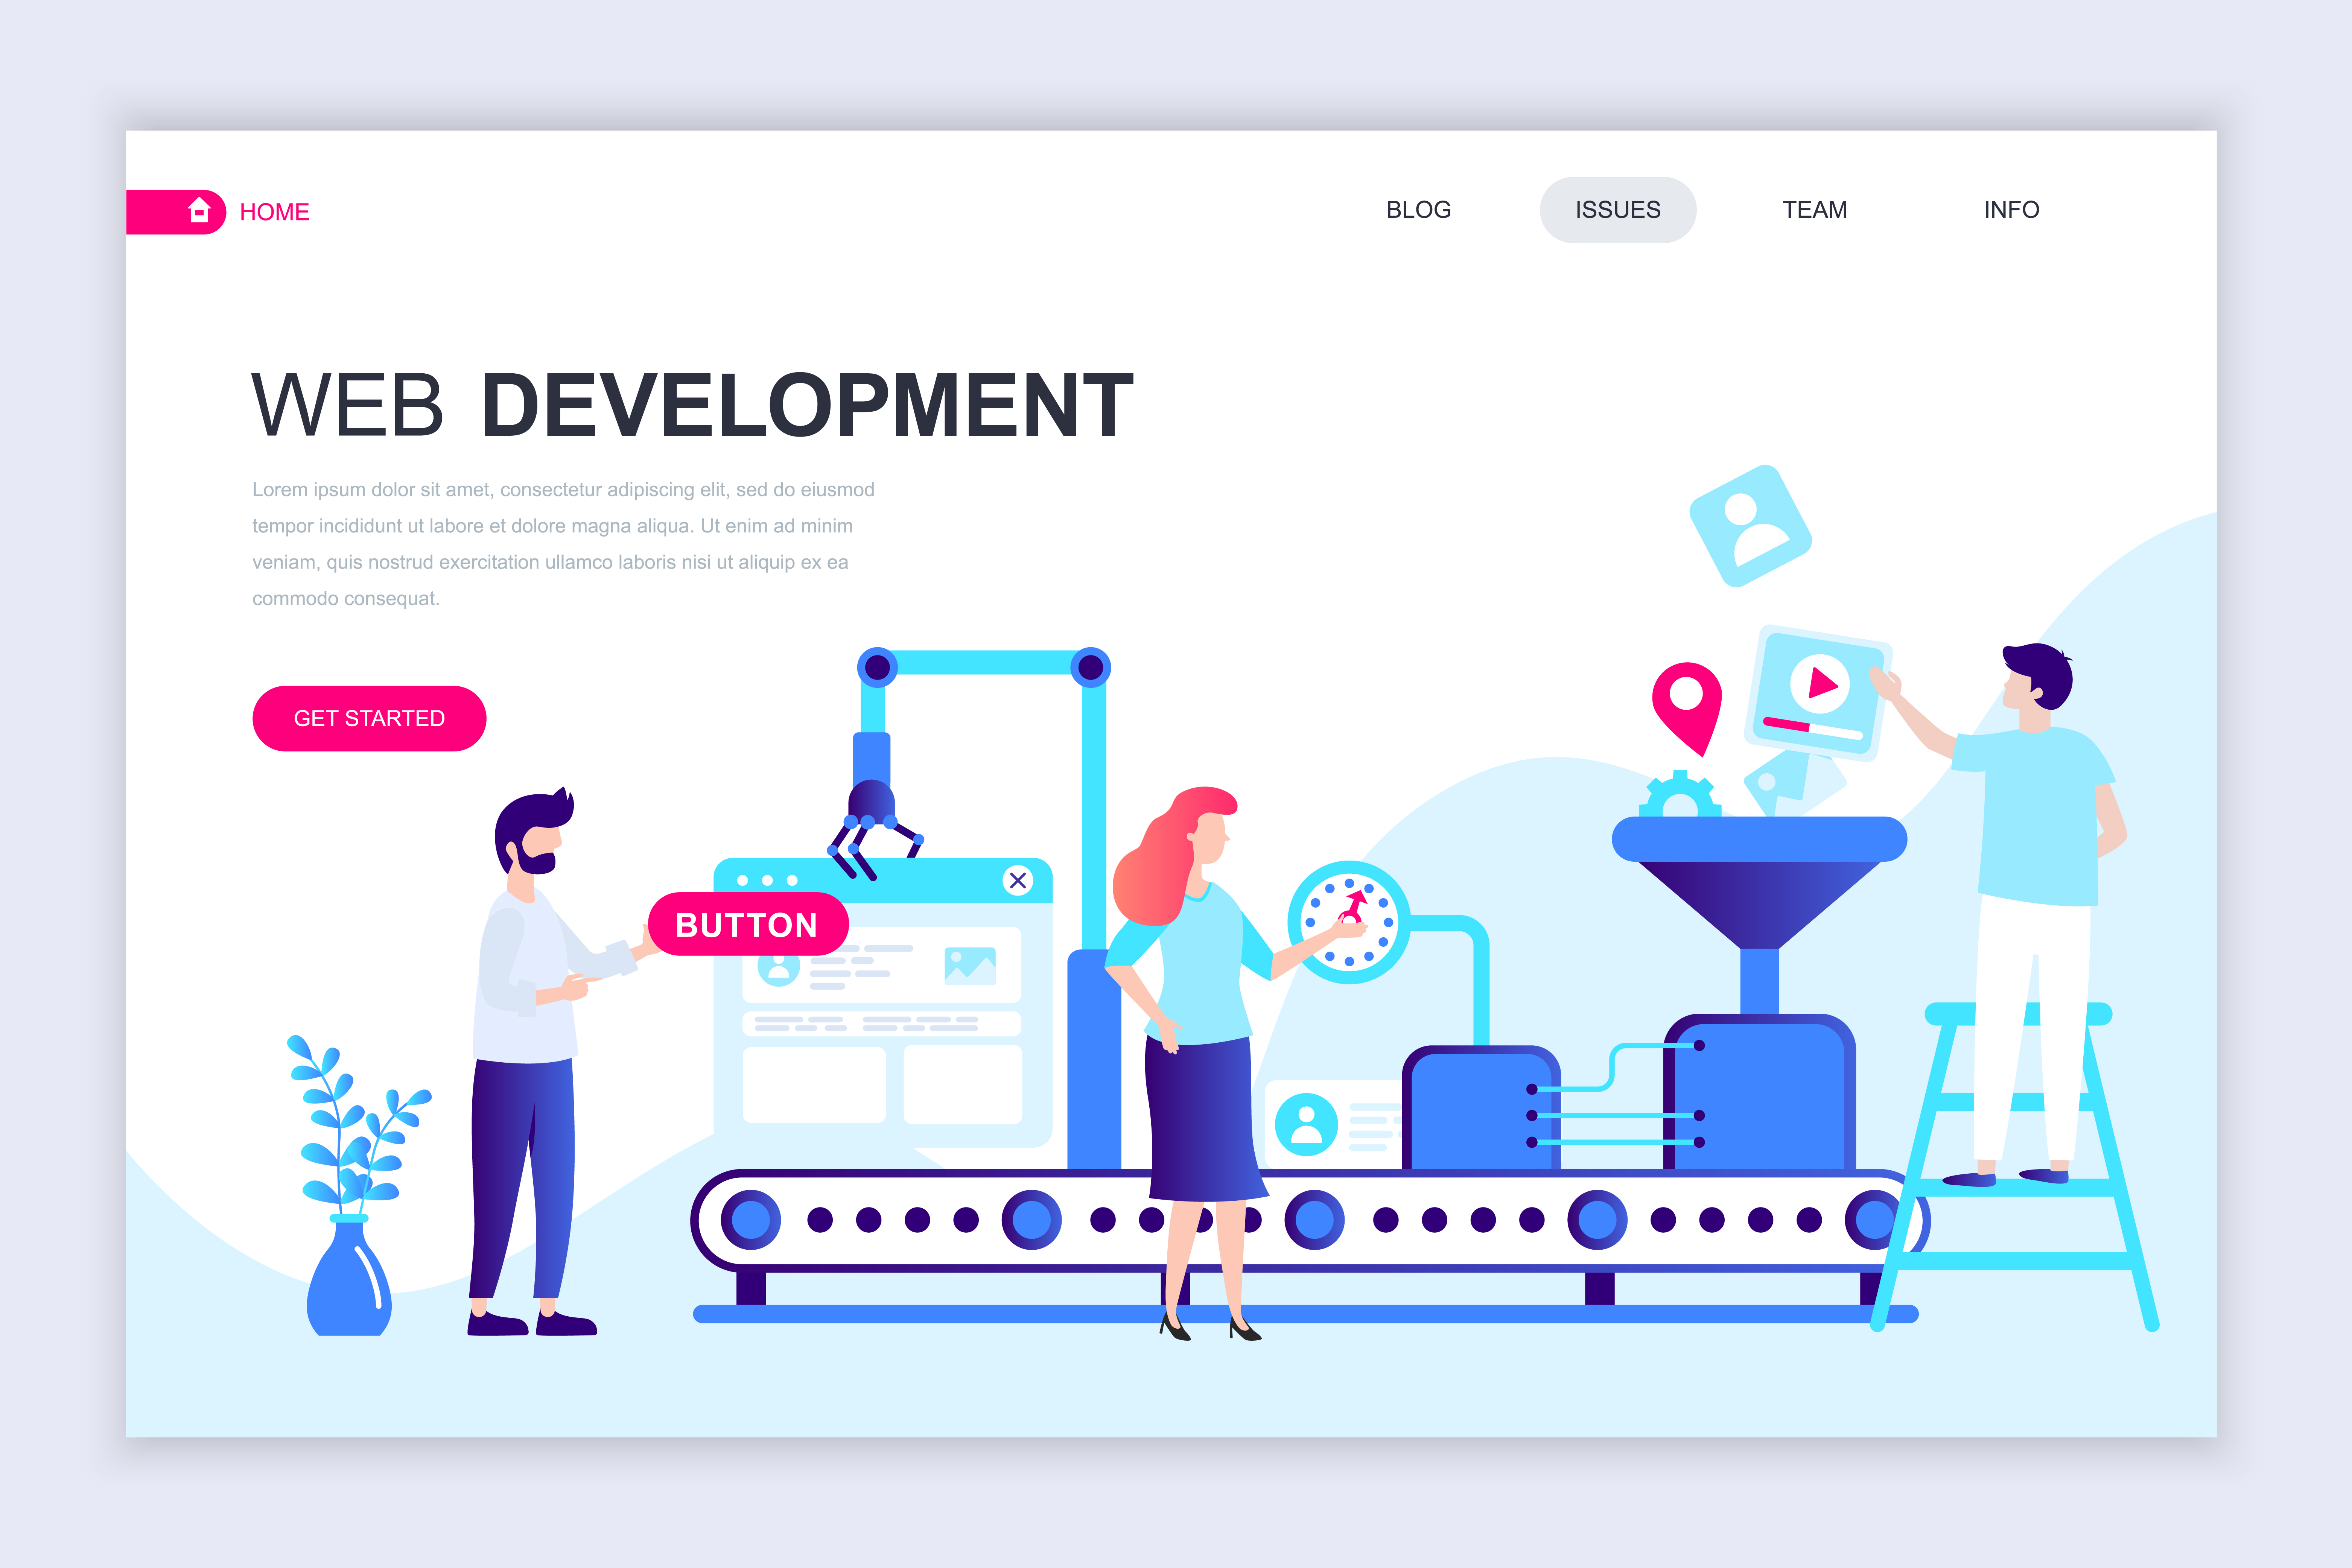 web-development-web-banner-vector Template Application Mobile Html on how make, free profile card, how create, registration form, one page, table design, layout free, free firearms,